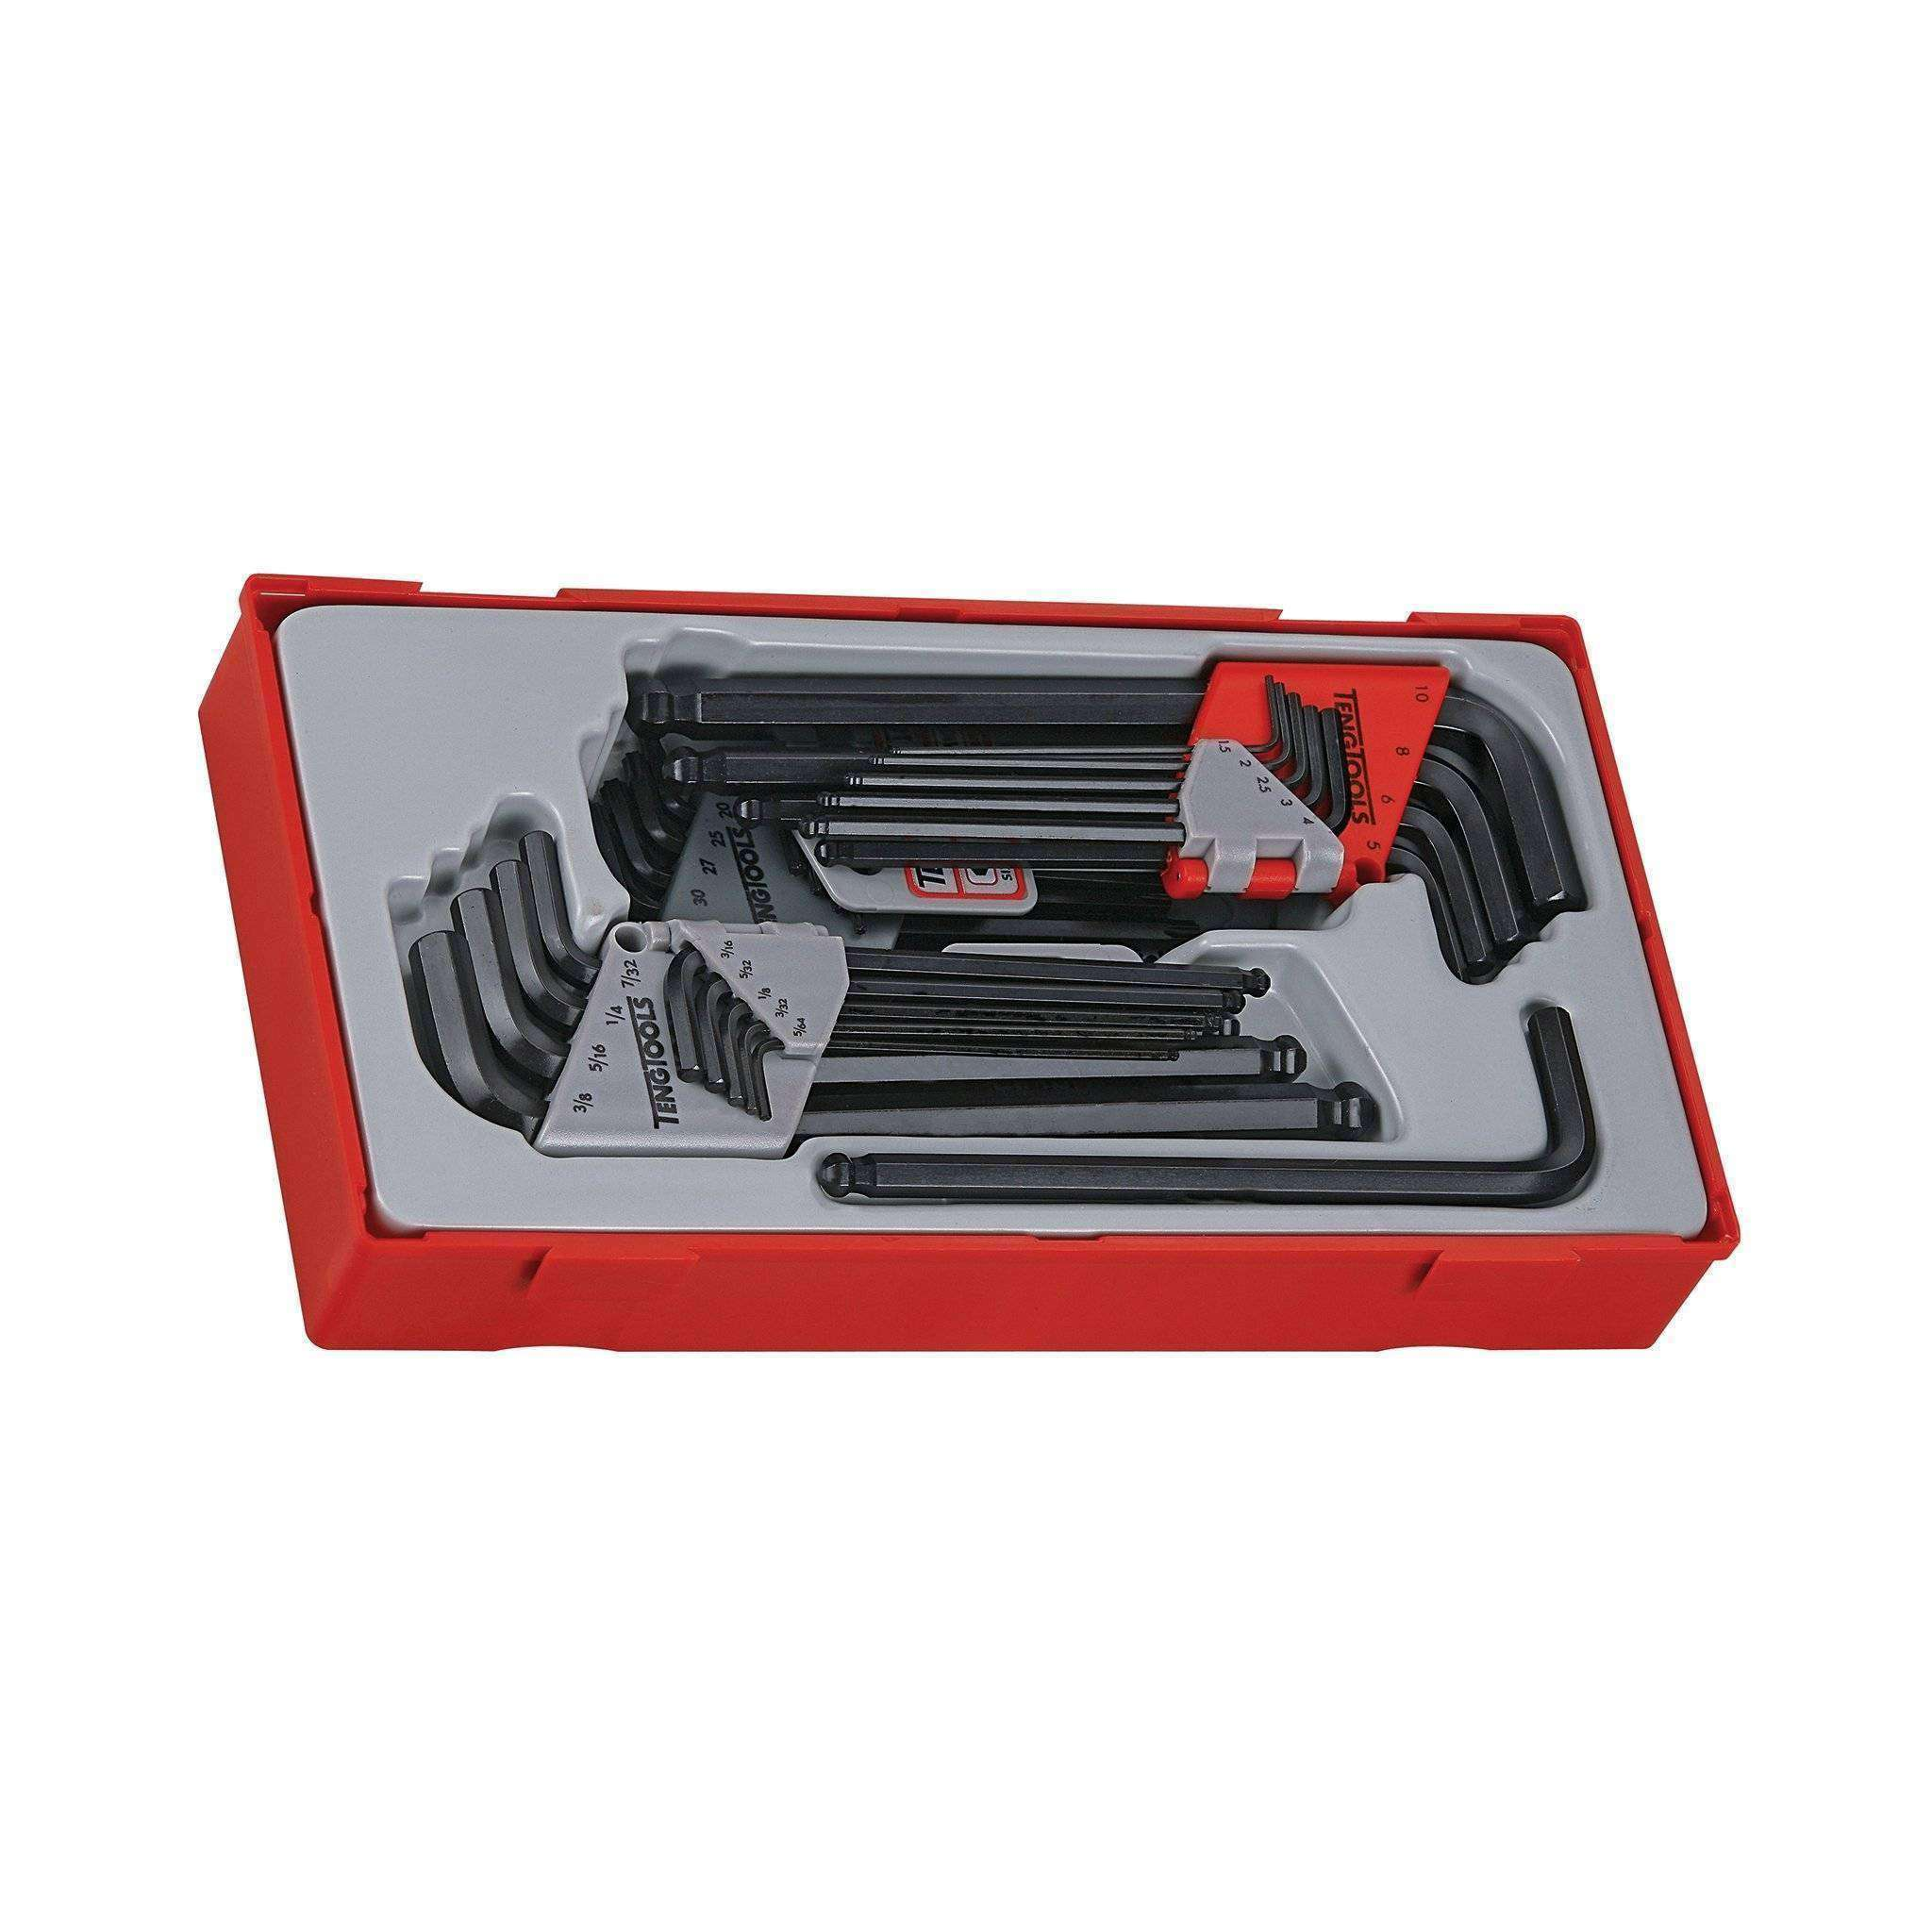 Teng Tools 28 Piece Metric/AF Hex & TX Key Set - Teng Tools USA